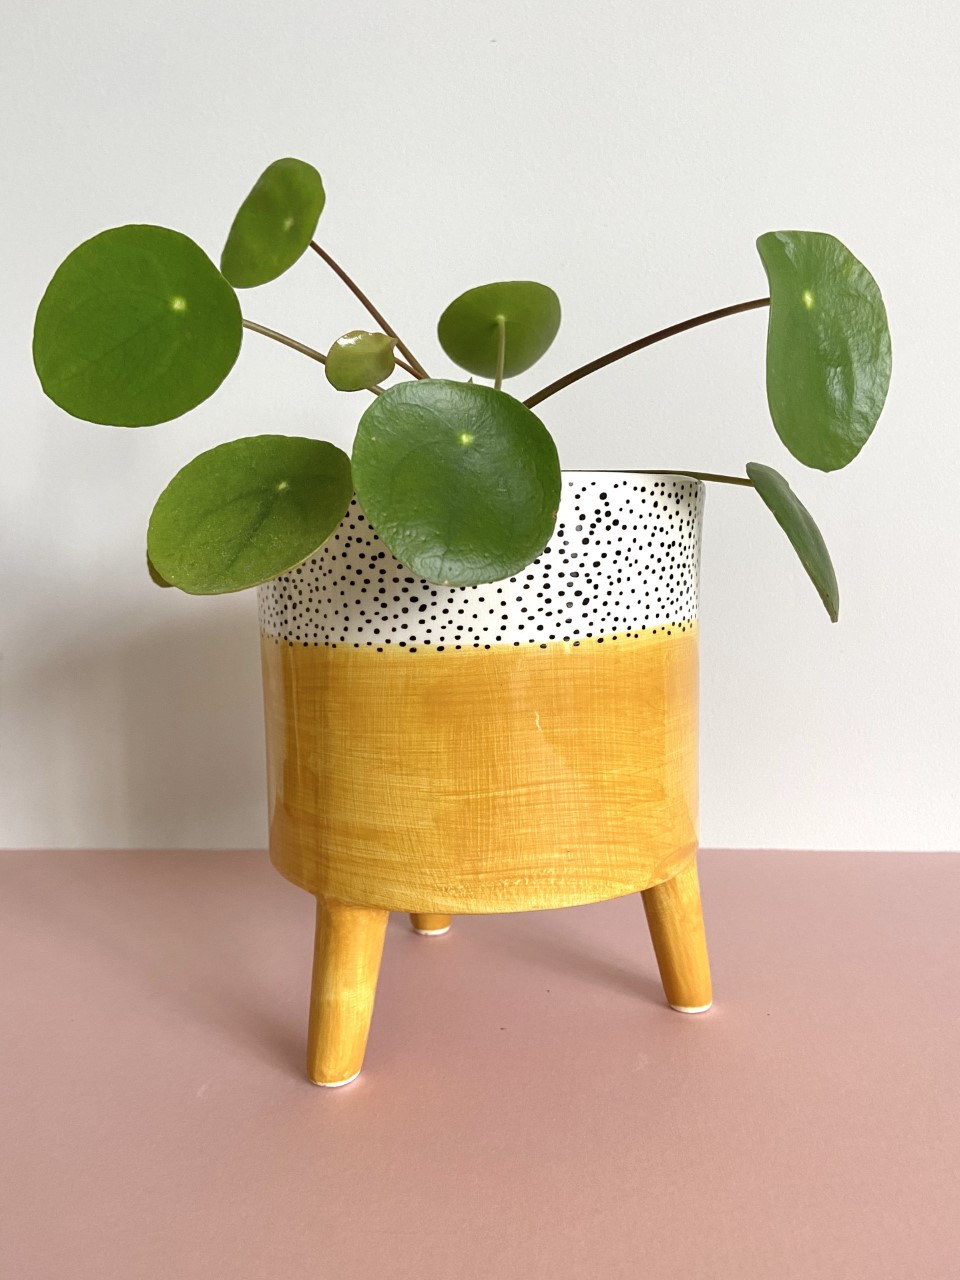 Little Wild Things Little Wild Things is an online botanical emporium that specialises in carefully selected houseplants and contemporary botanical displays for your home.  Combining nature and interior design, they offer houseplants, Kokedama, Terrariums, pots, hangers, dried flowers and more.